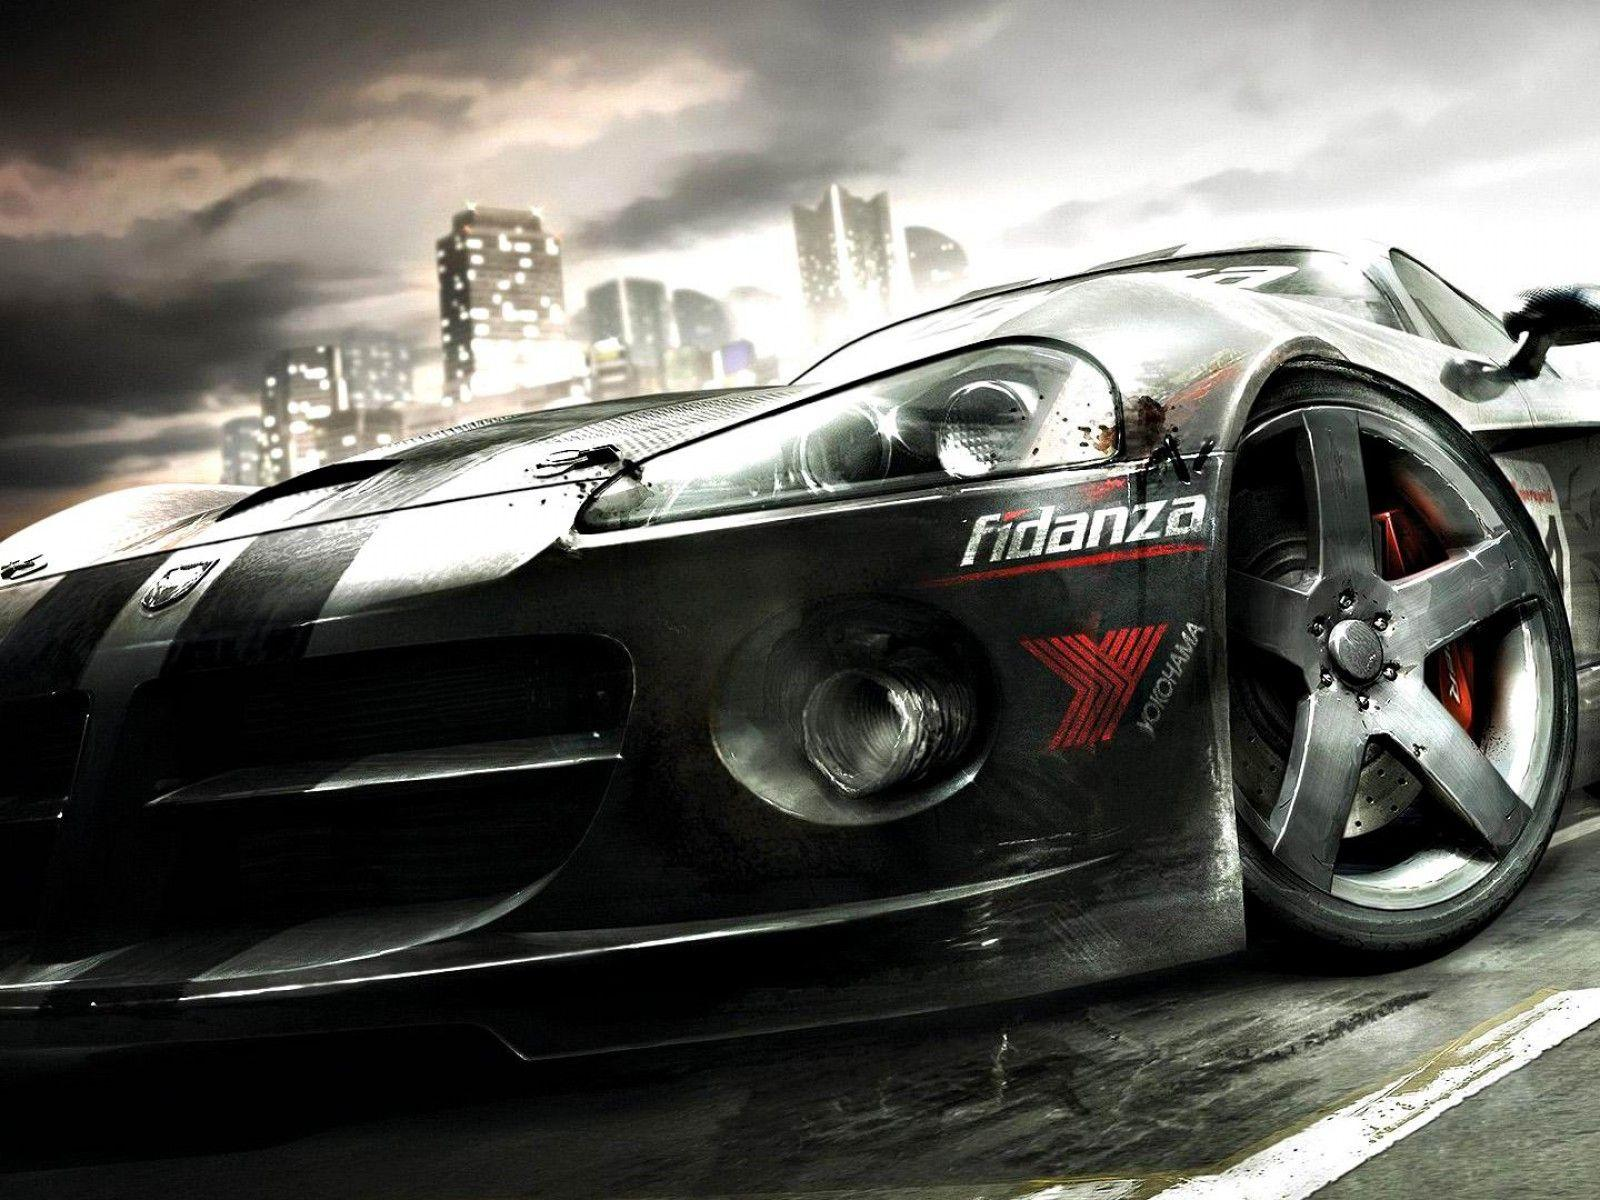 Wallpaper Mobil Sport Black: Wallpapers Mobil Sport Full HD